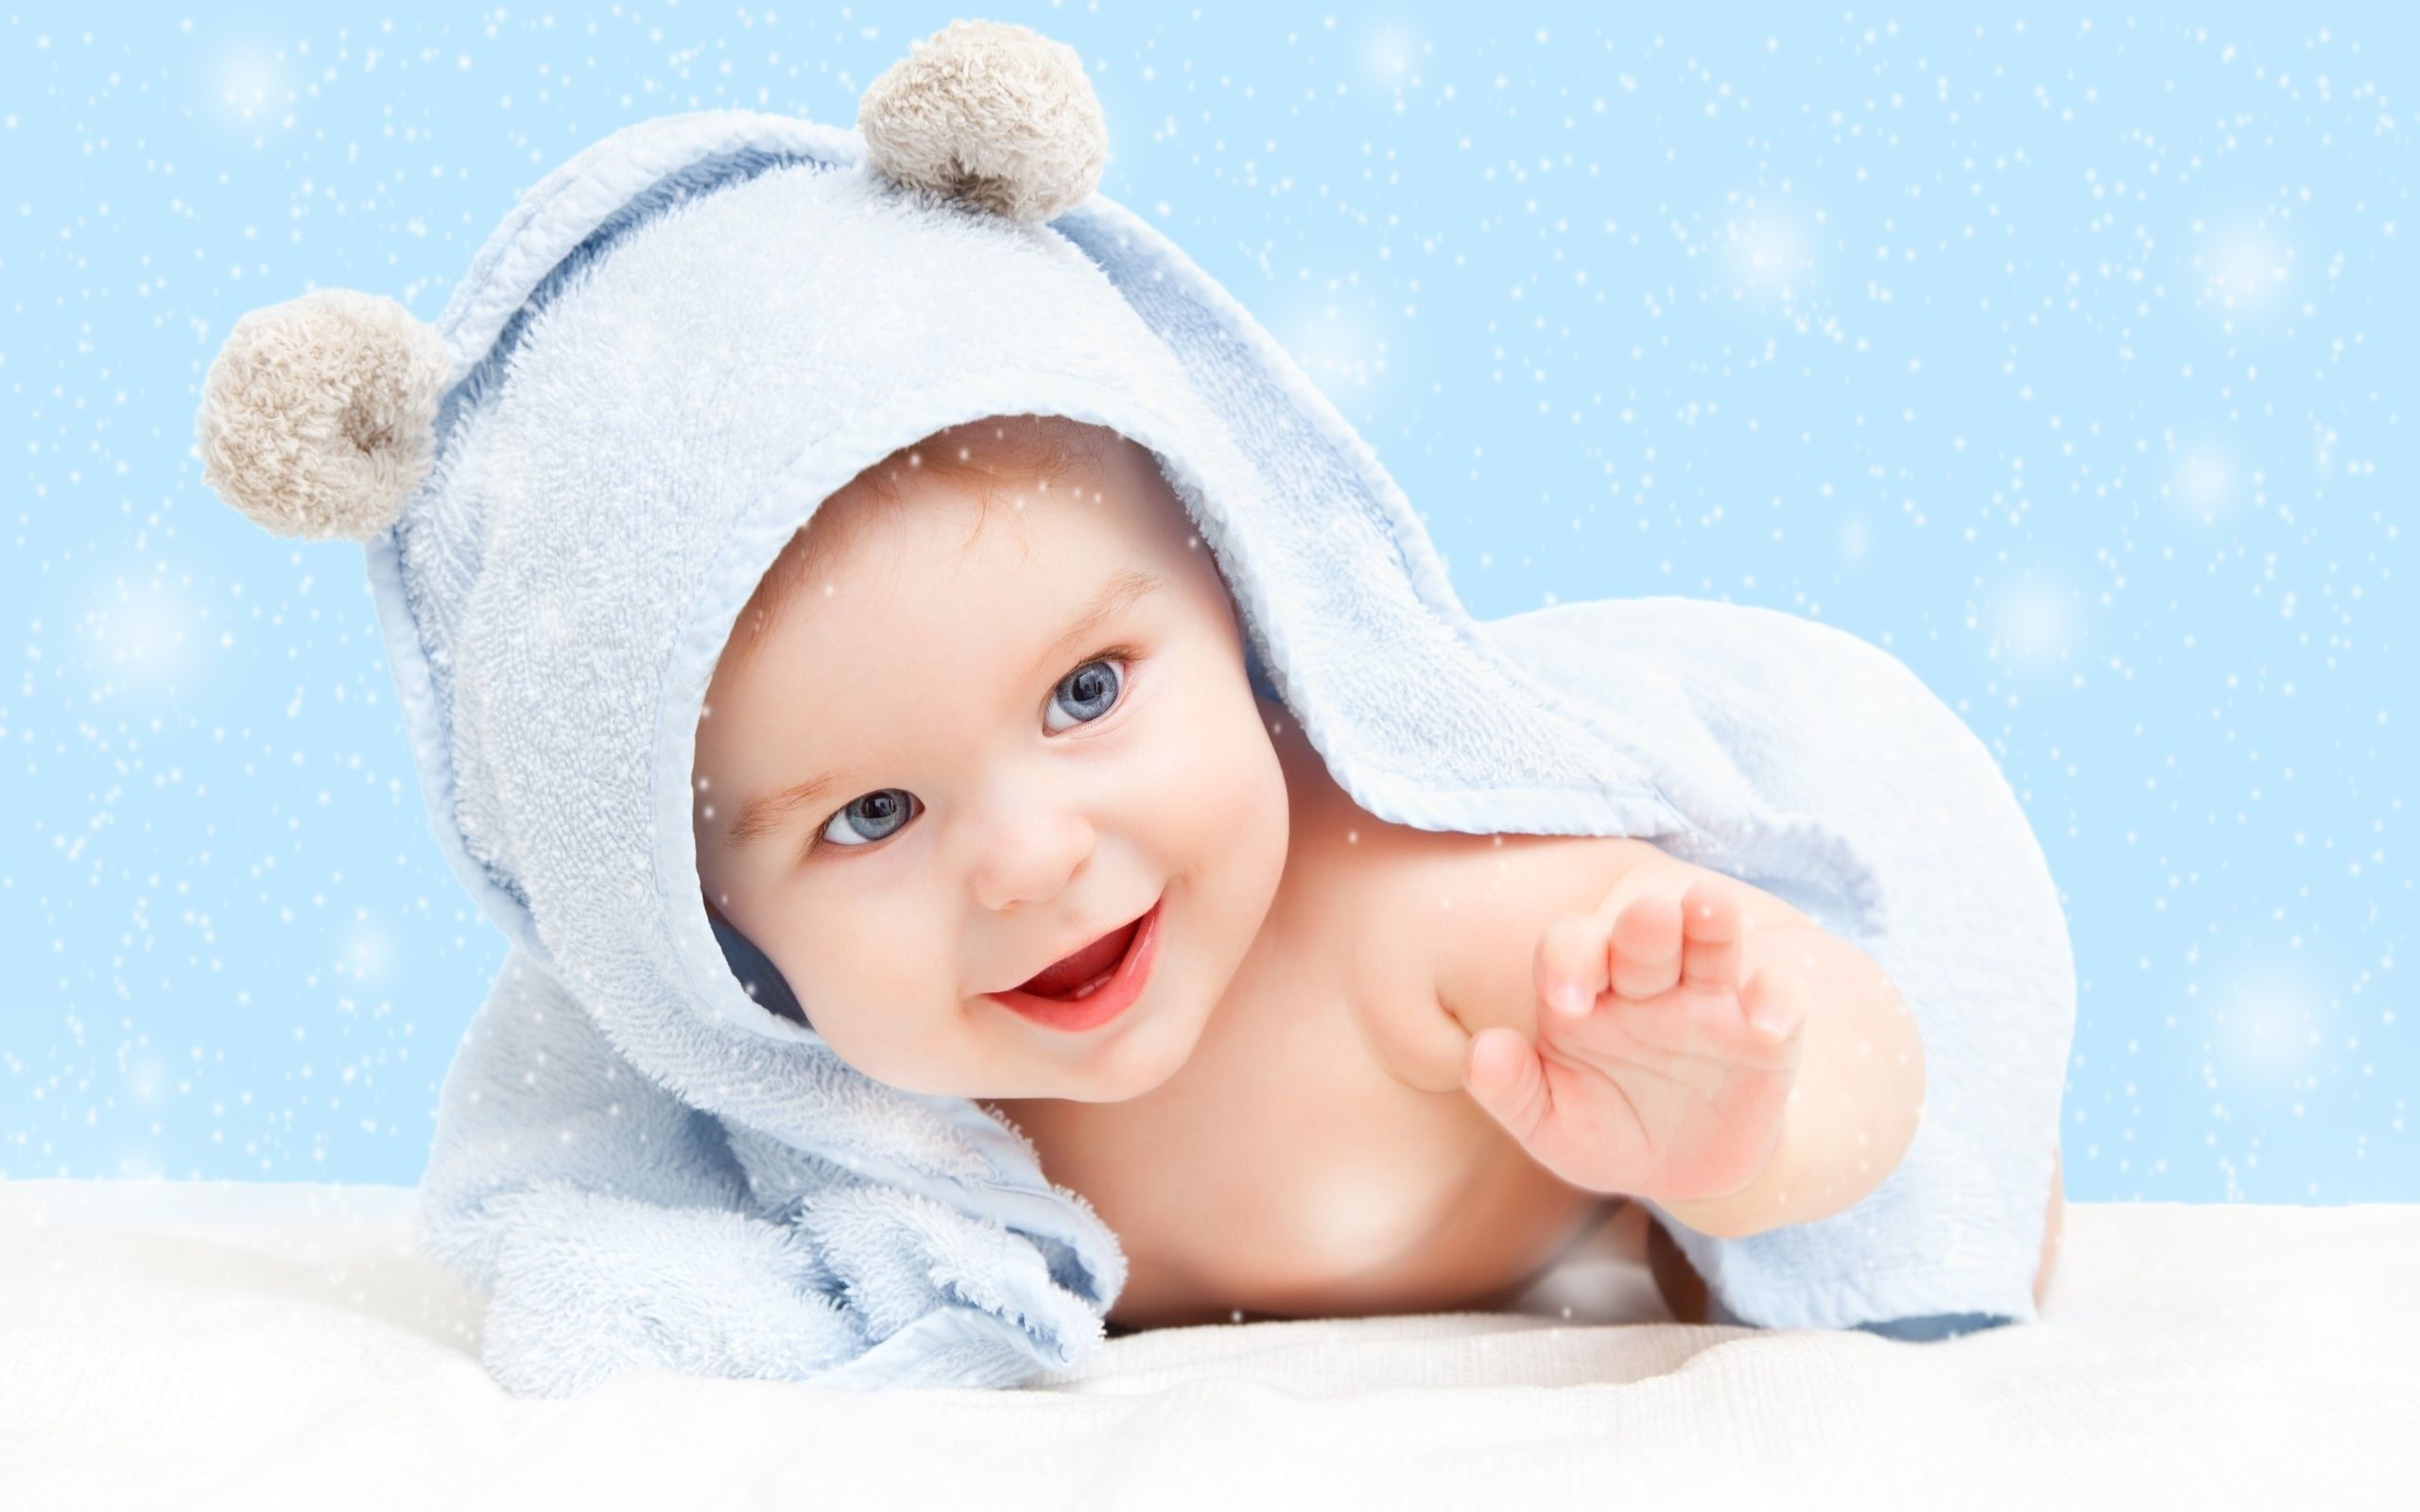 Cute Baby Smile Wallpapers For You · Inspired